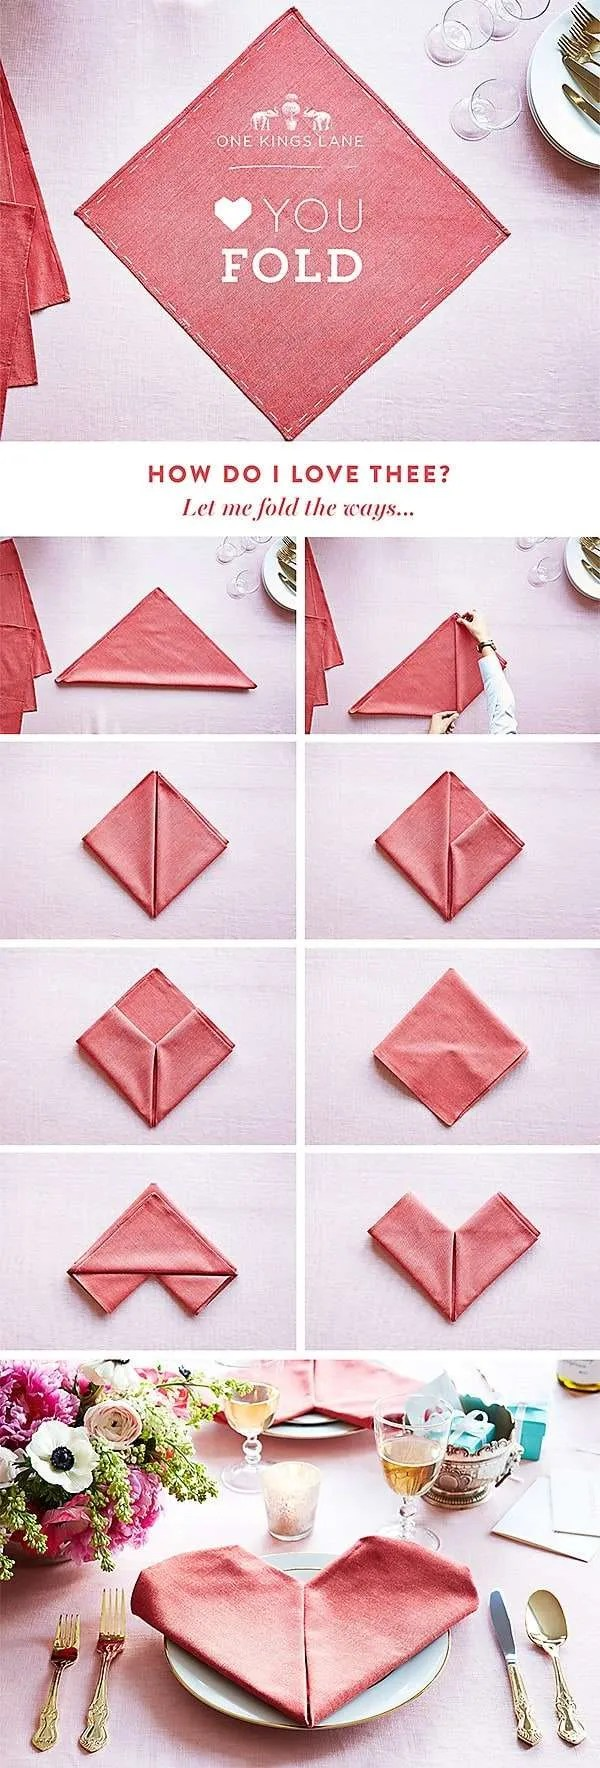 8 SIMPLE VALENTINE'S DAY CRAFTS FOR KIDS